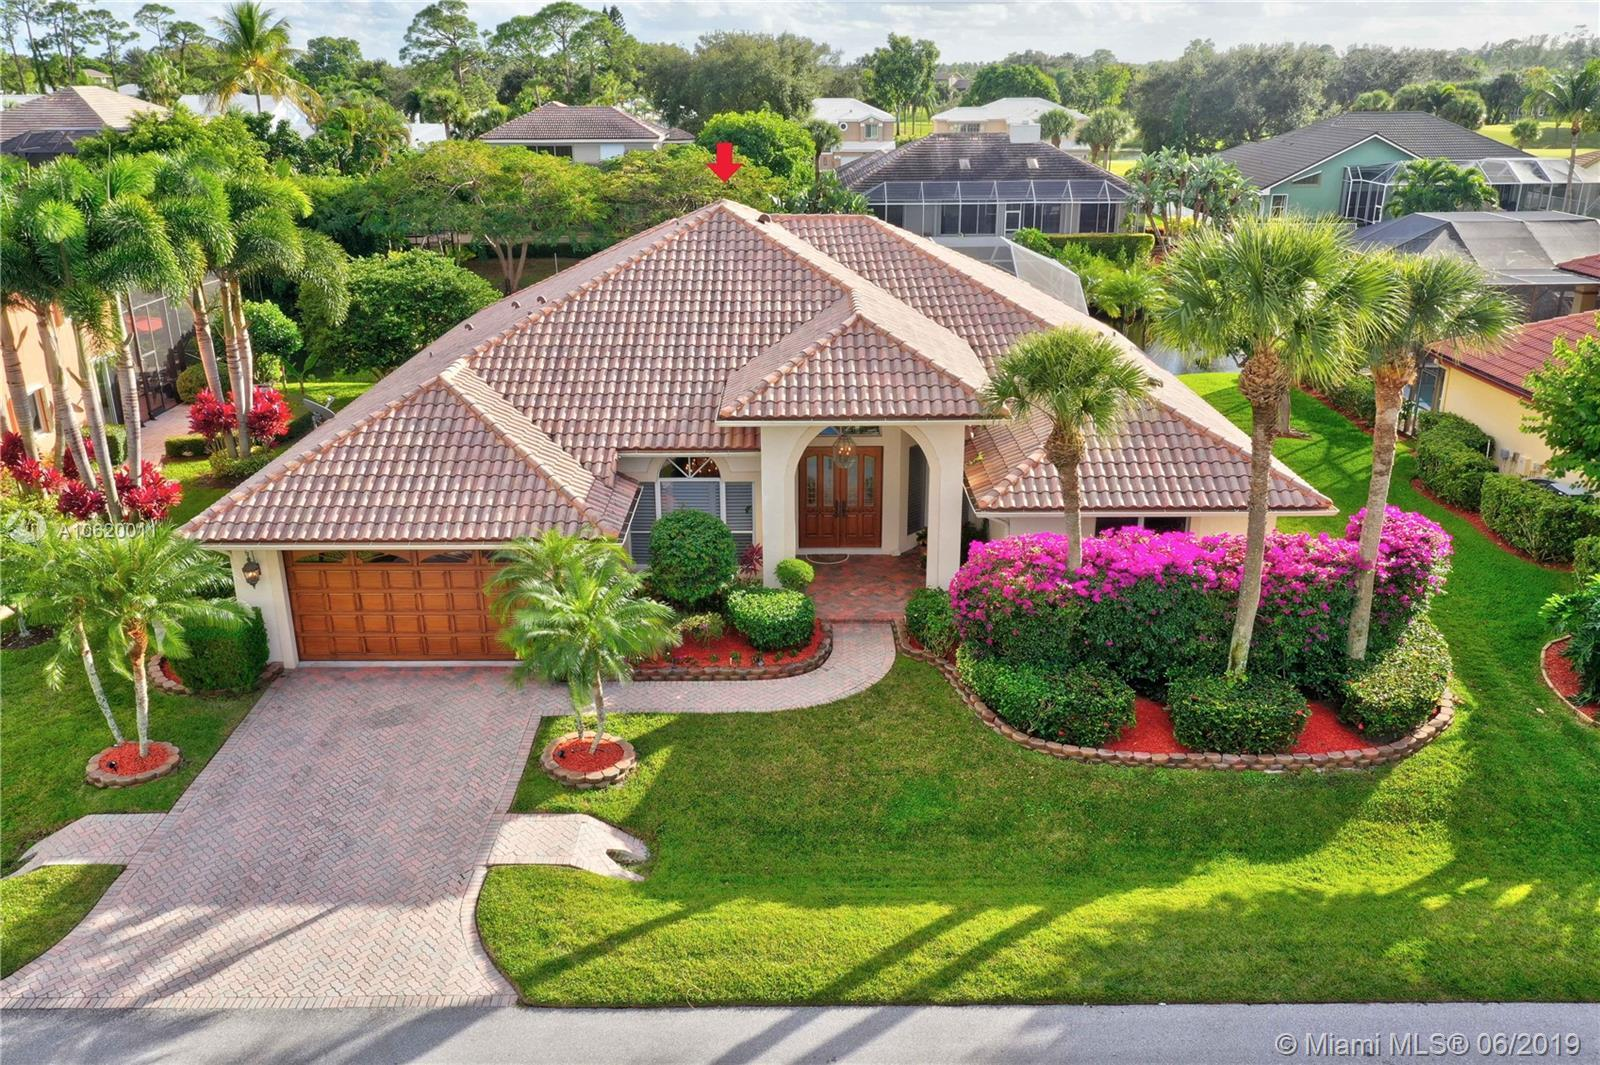 Waterfront 4/3/2 Split Floor Plan home w/ocean access in Jupiter/Tequesta. Elegance and a Tropical A